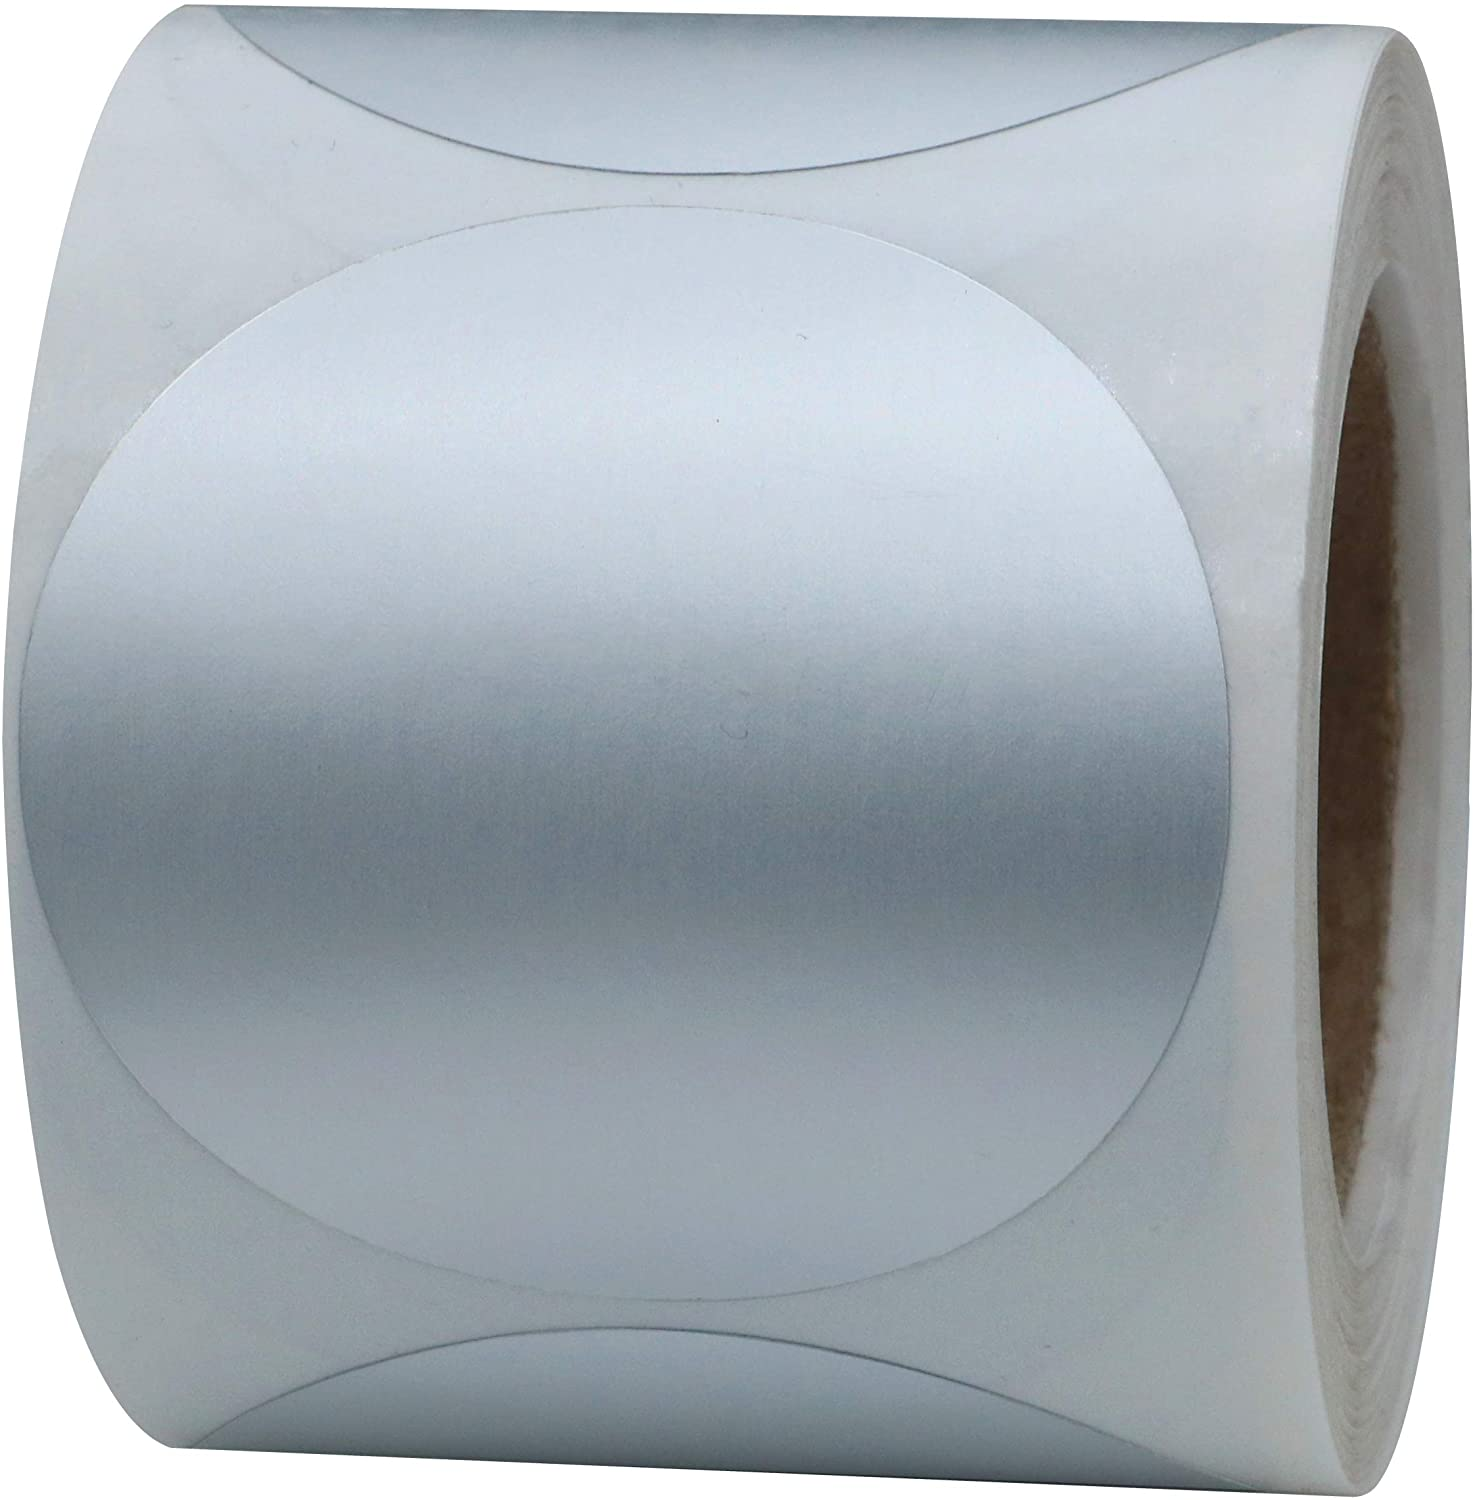 Aleplay Silver Metallic Labels 2 inch 51mm Round Color Coding Dots Stickers Total 300 Per Roll (10 Rolls)